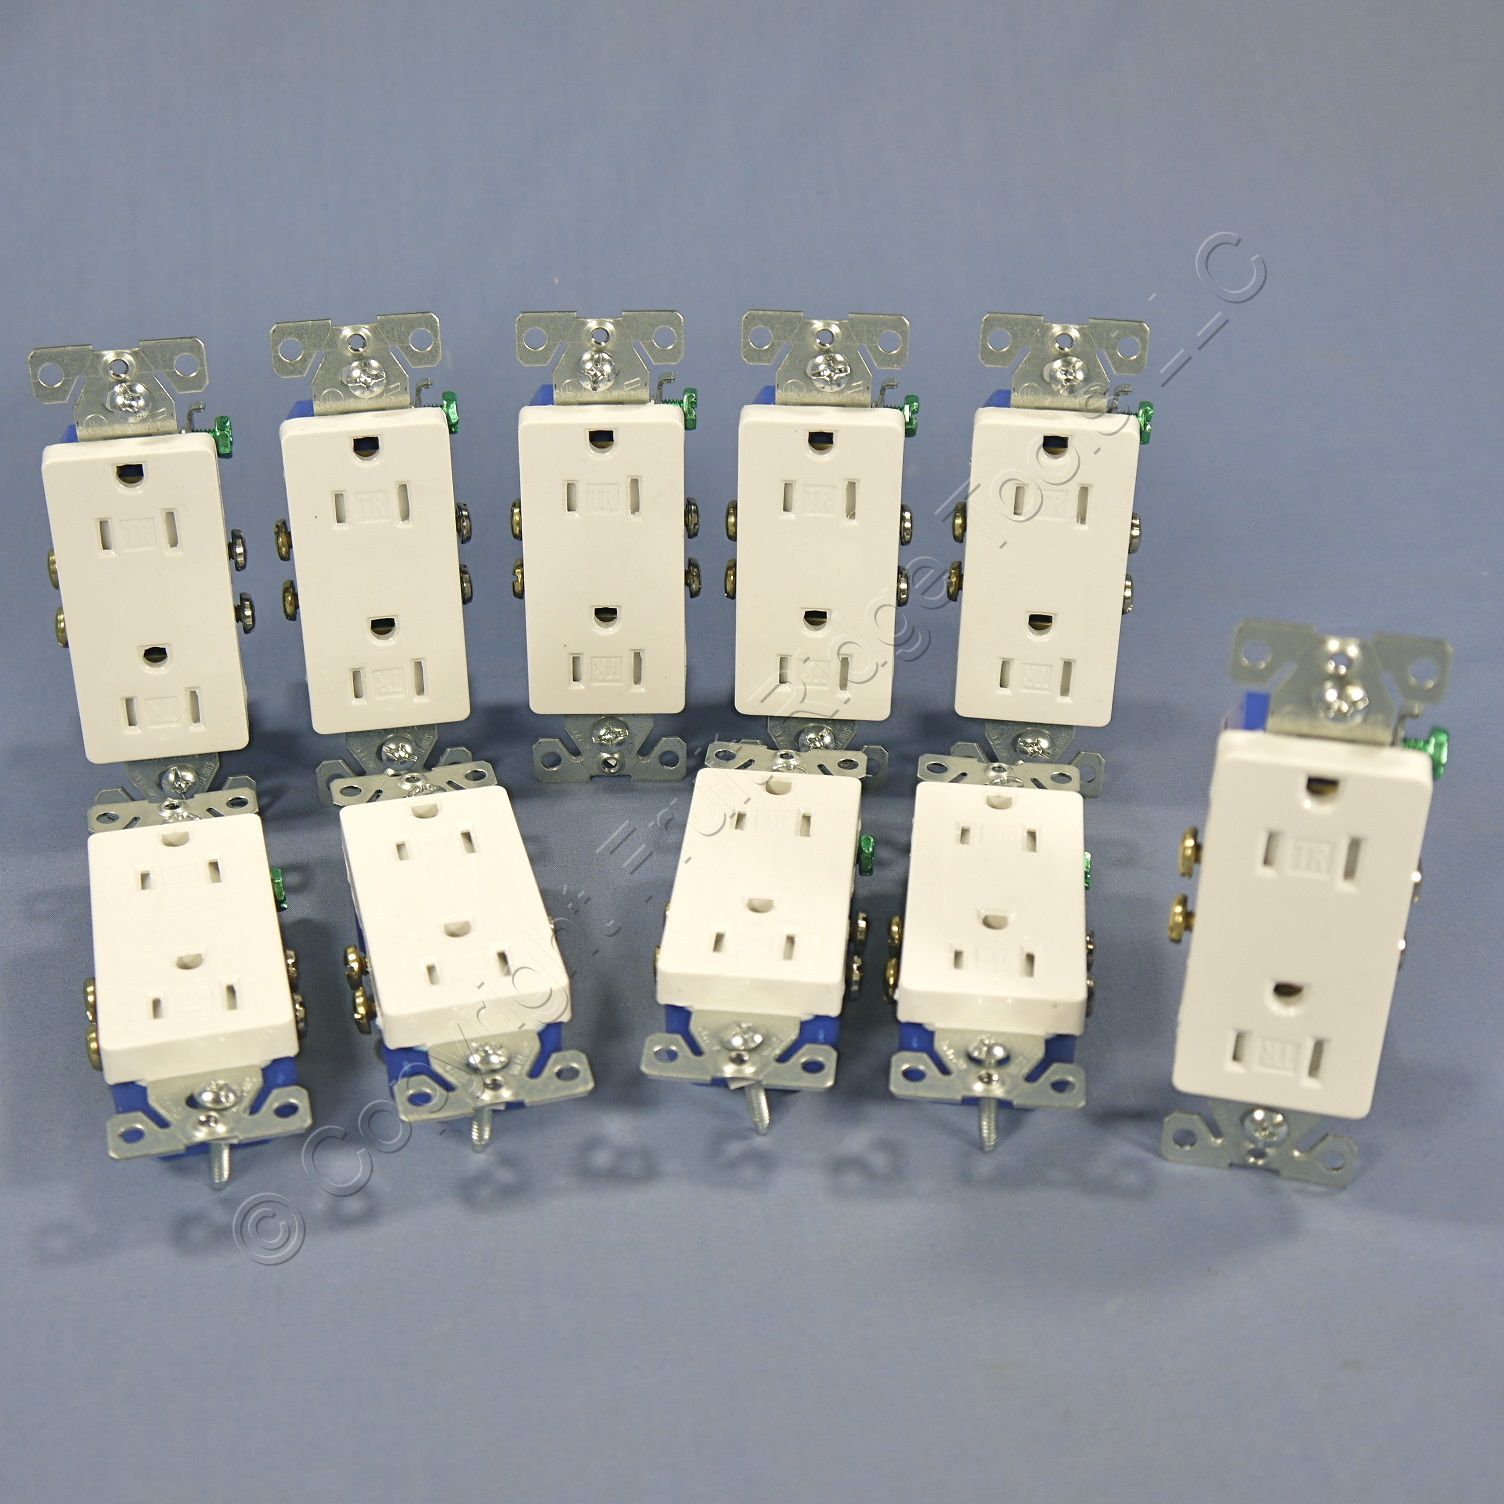 10 Cooper White TAMPER RESISTANT Duplex Receptacle Outlets NEMA 5-15 15A TR1107W